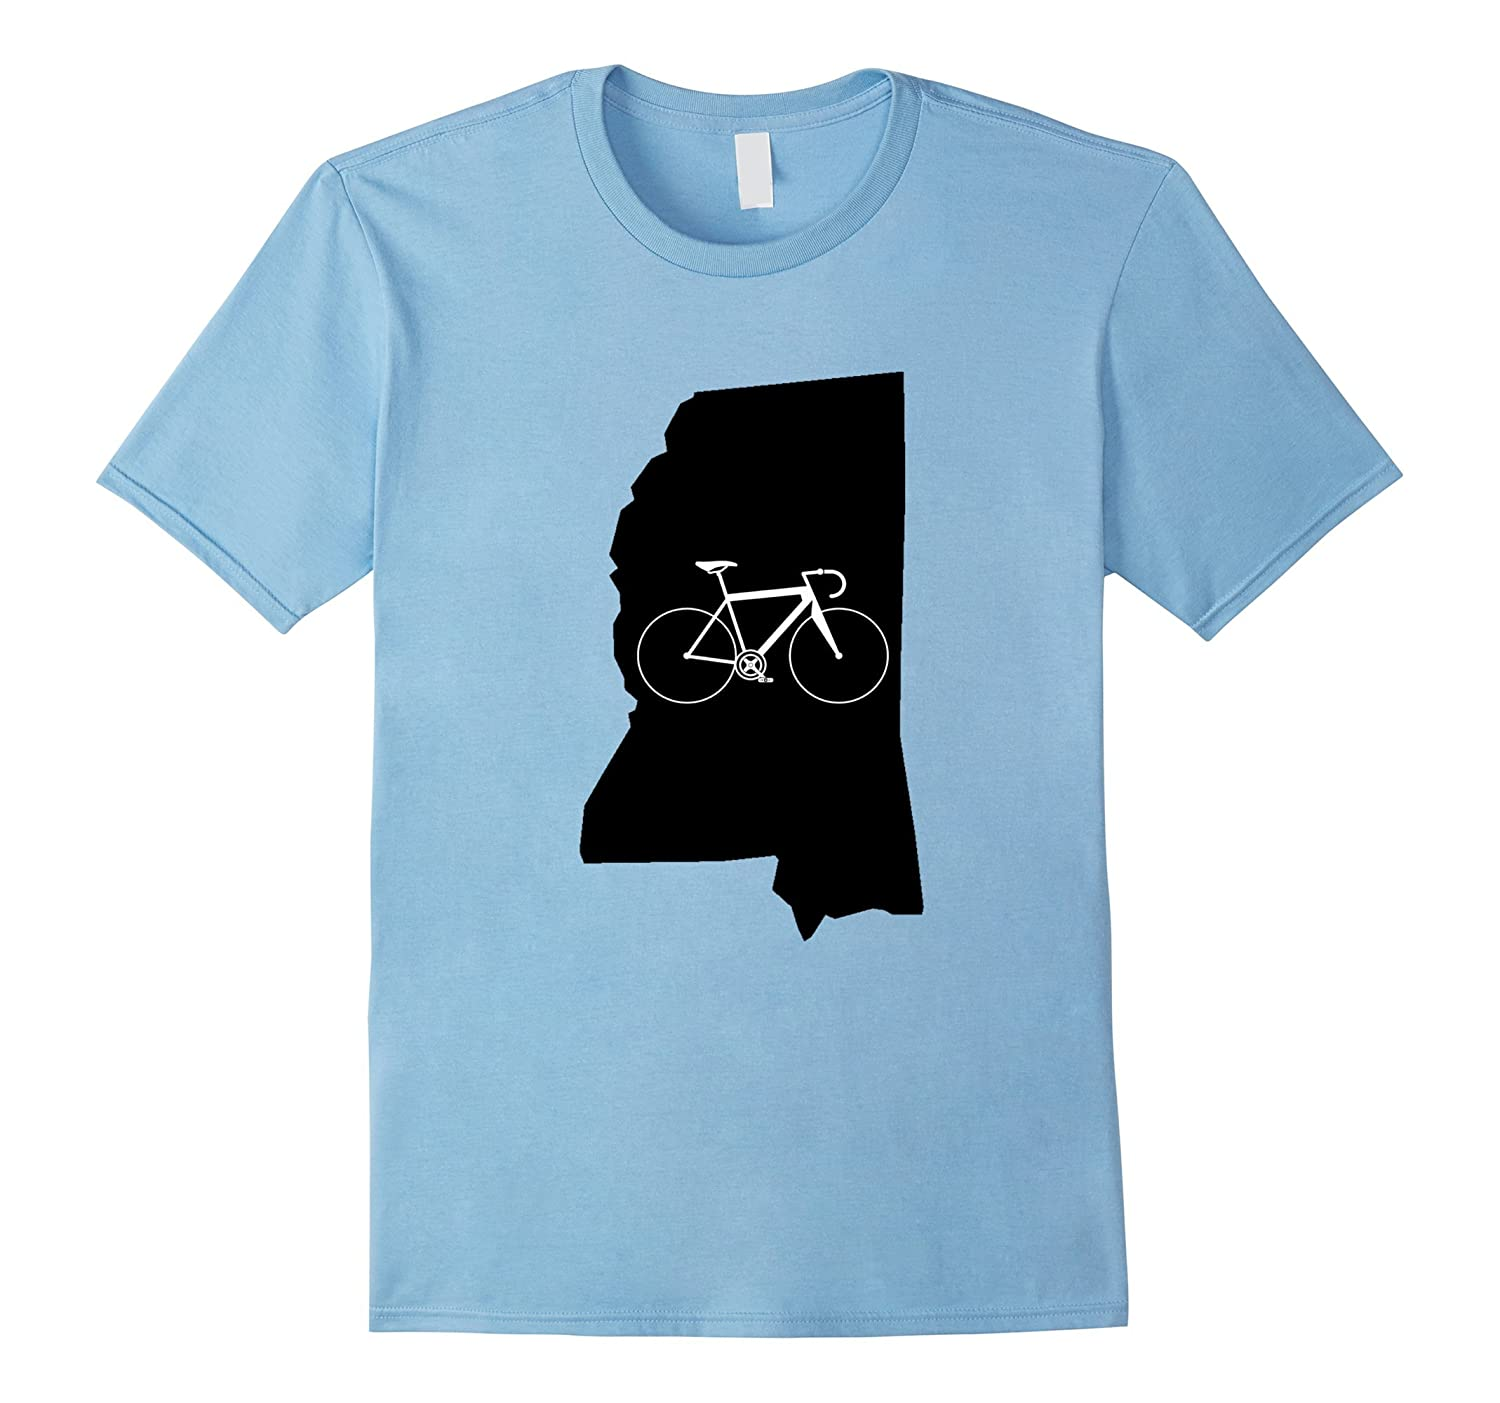 Bicycle Mississippi Shirt, Cyclist Tee, State Road Bike-T-Shirt